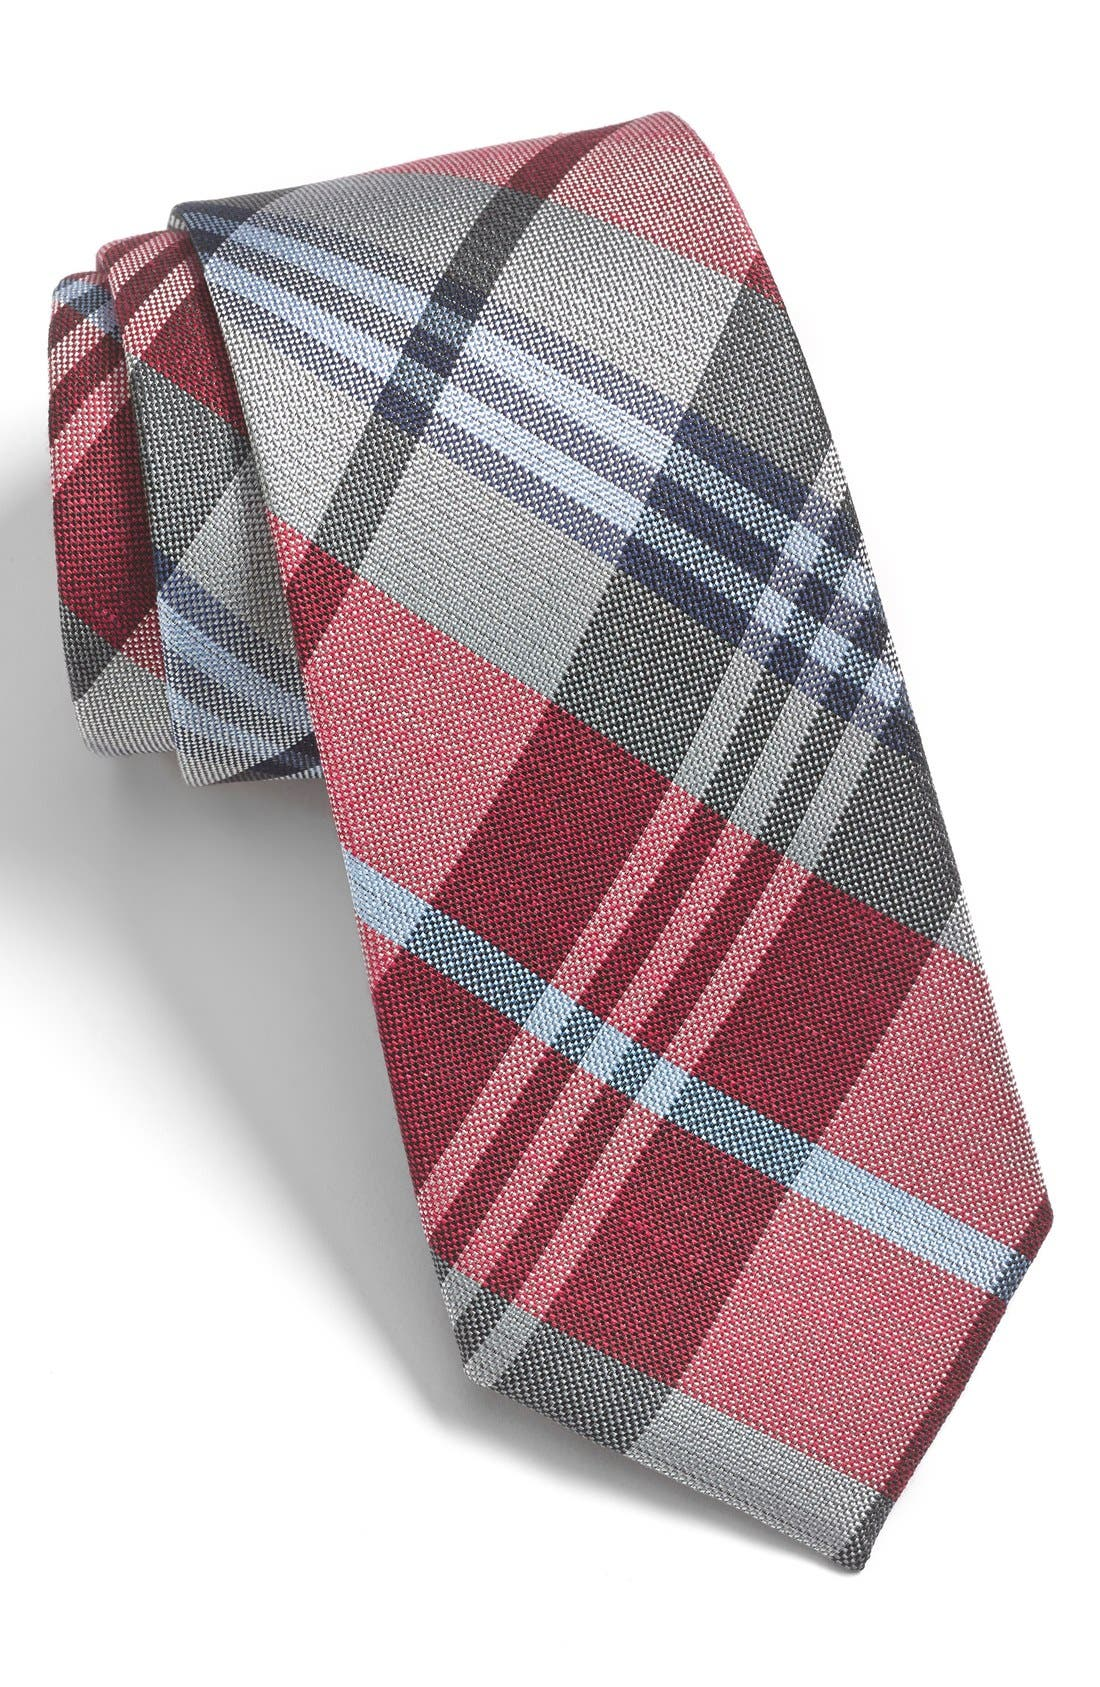 Main Image - The Tie Bar 'Crystal Wave' Silk & Linen Plaid Tie (Online Only)